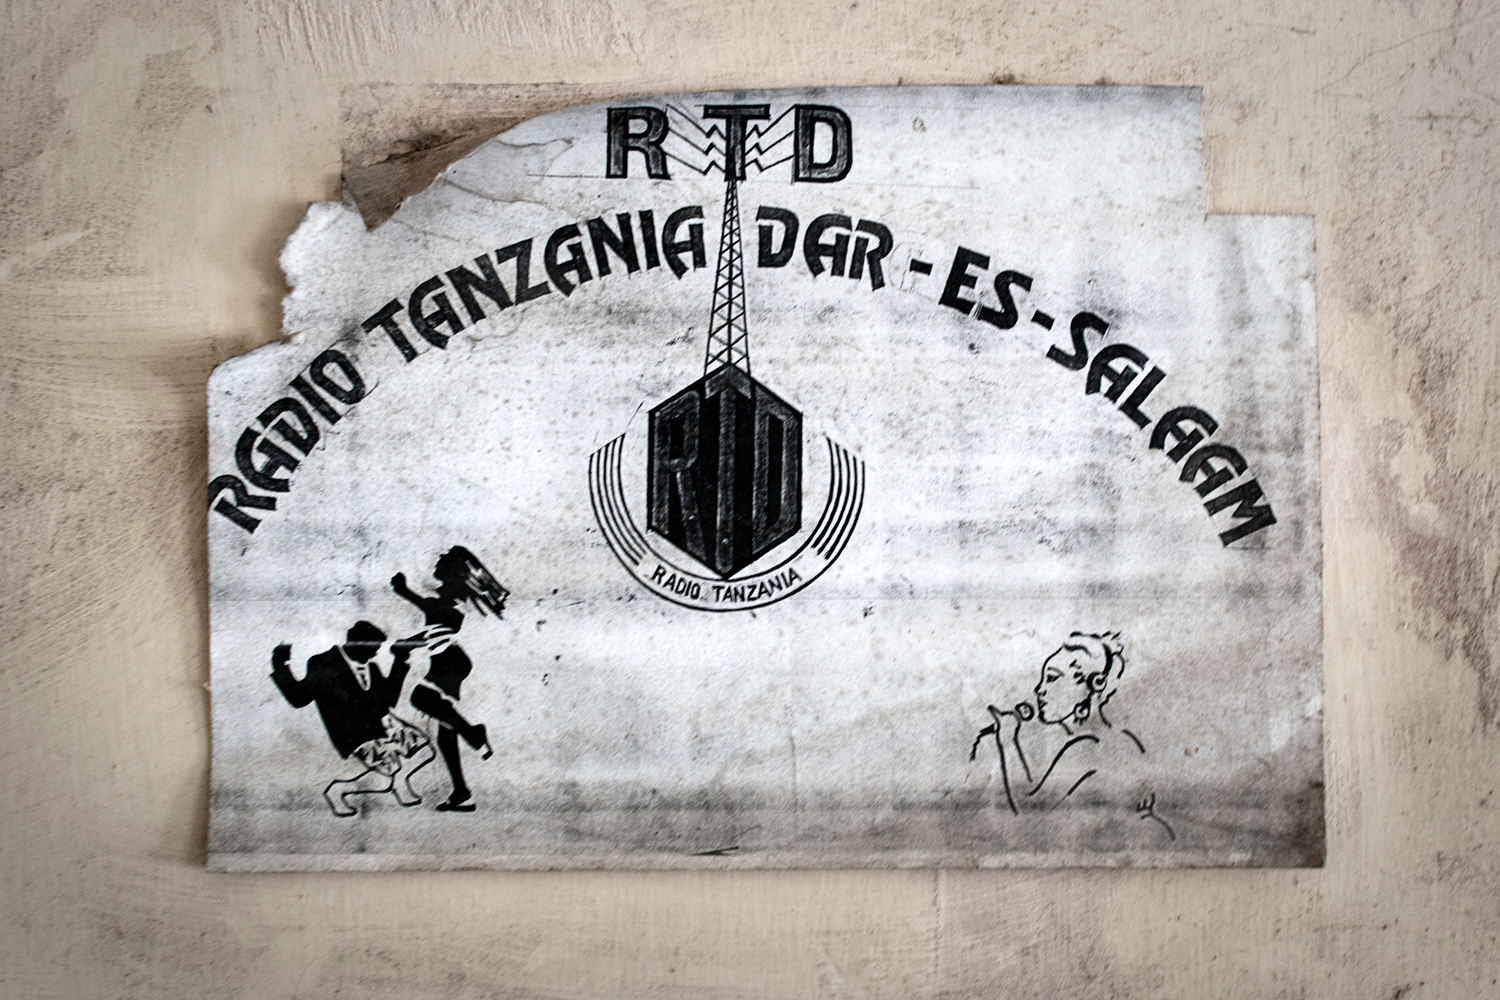 As Tanzania's one-party system collapsed in the 1980s, the state media monopoly ended. Radio Tanzania became just another signal on the dial, which it remains today.